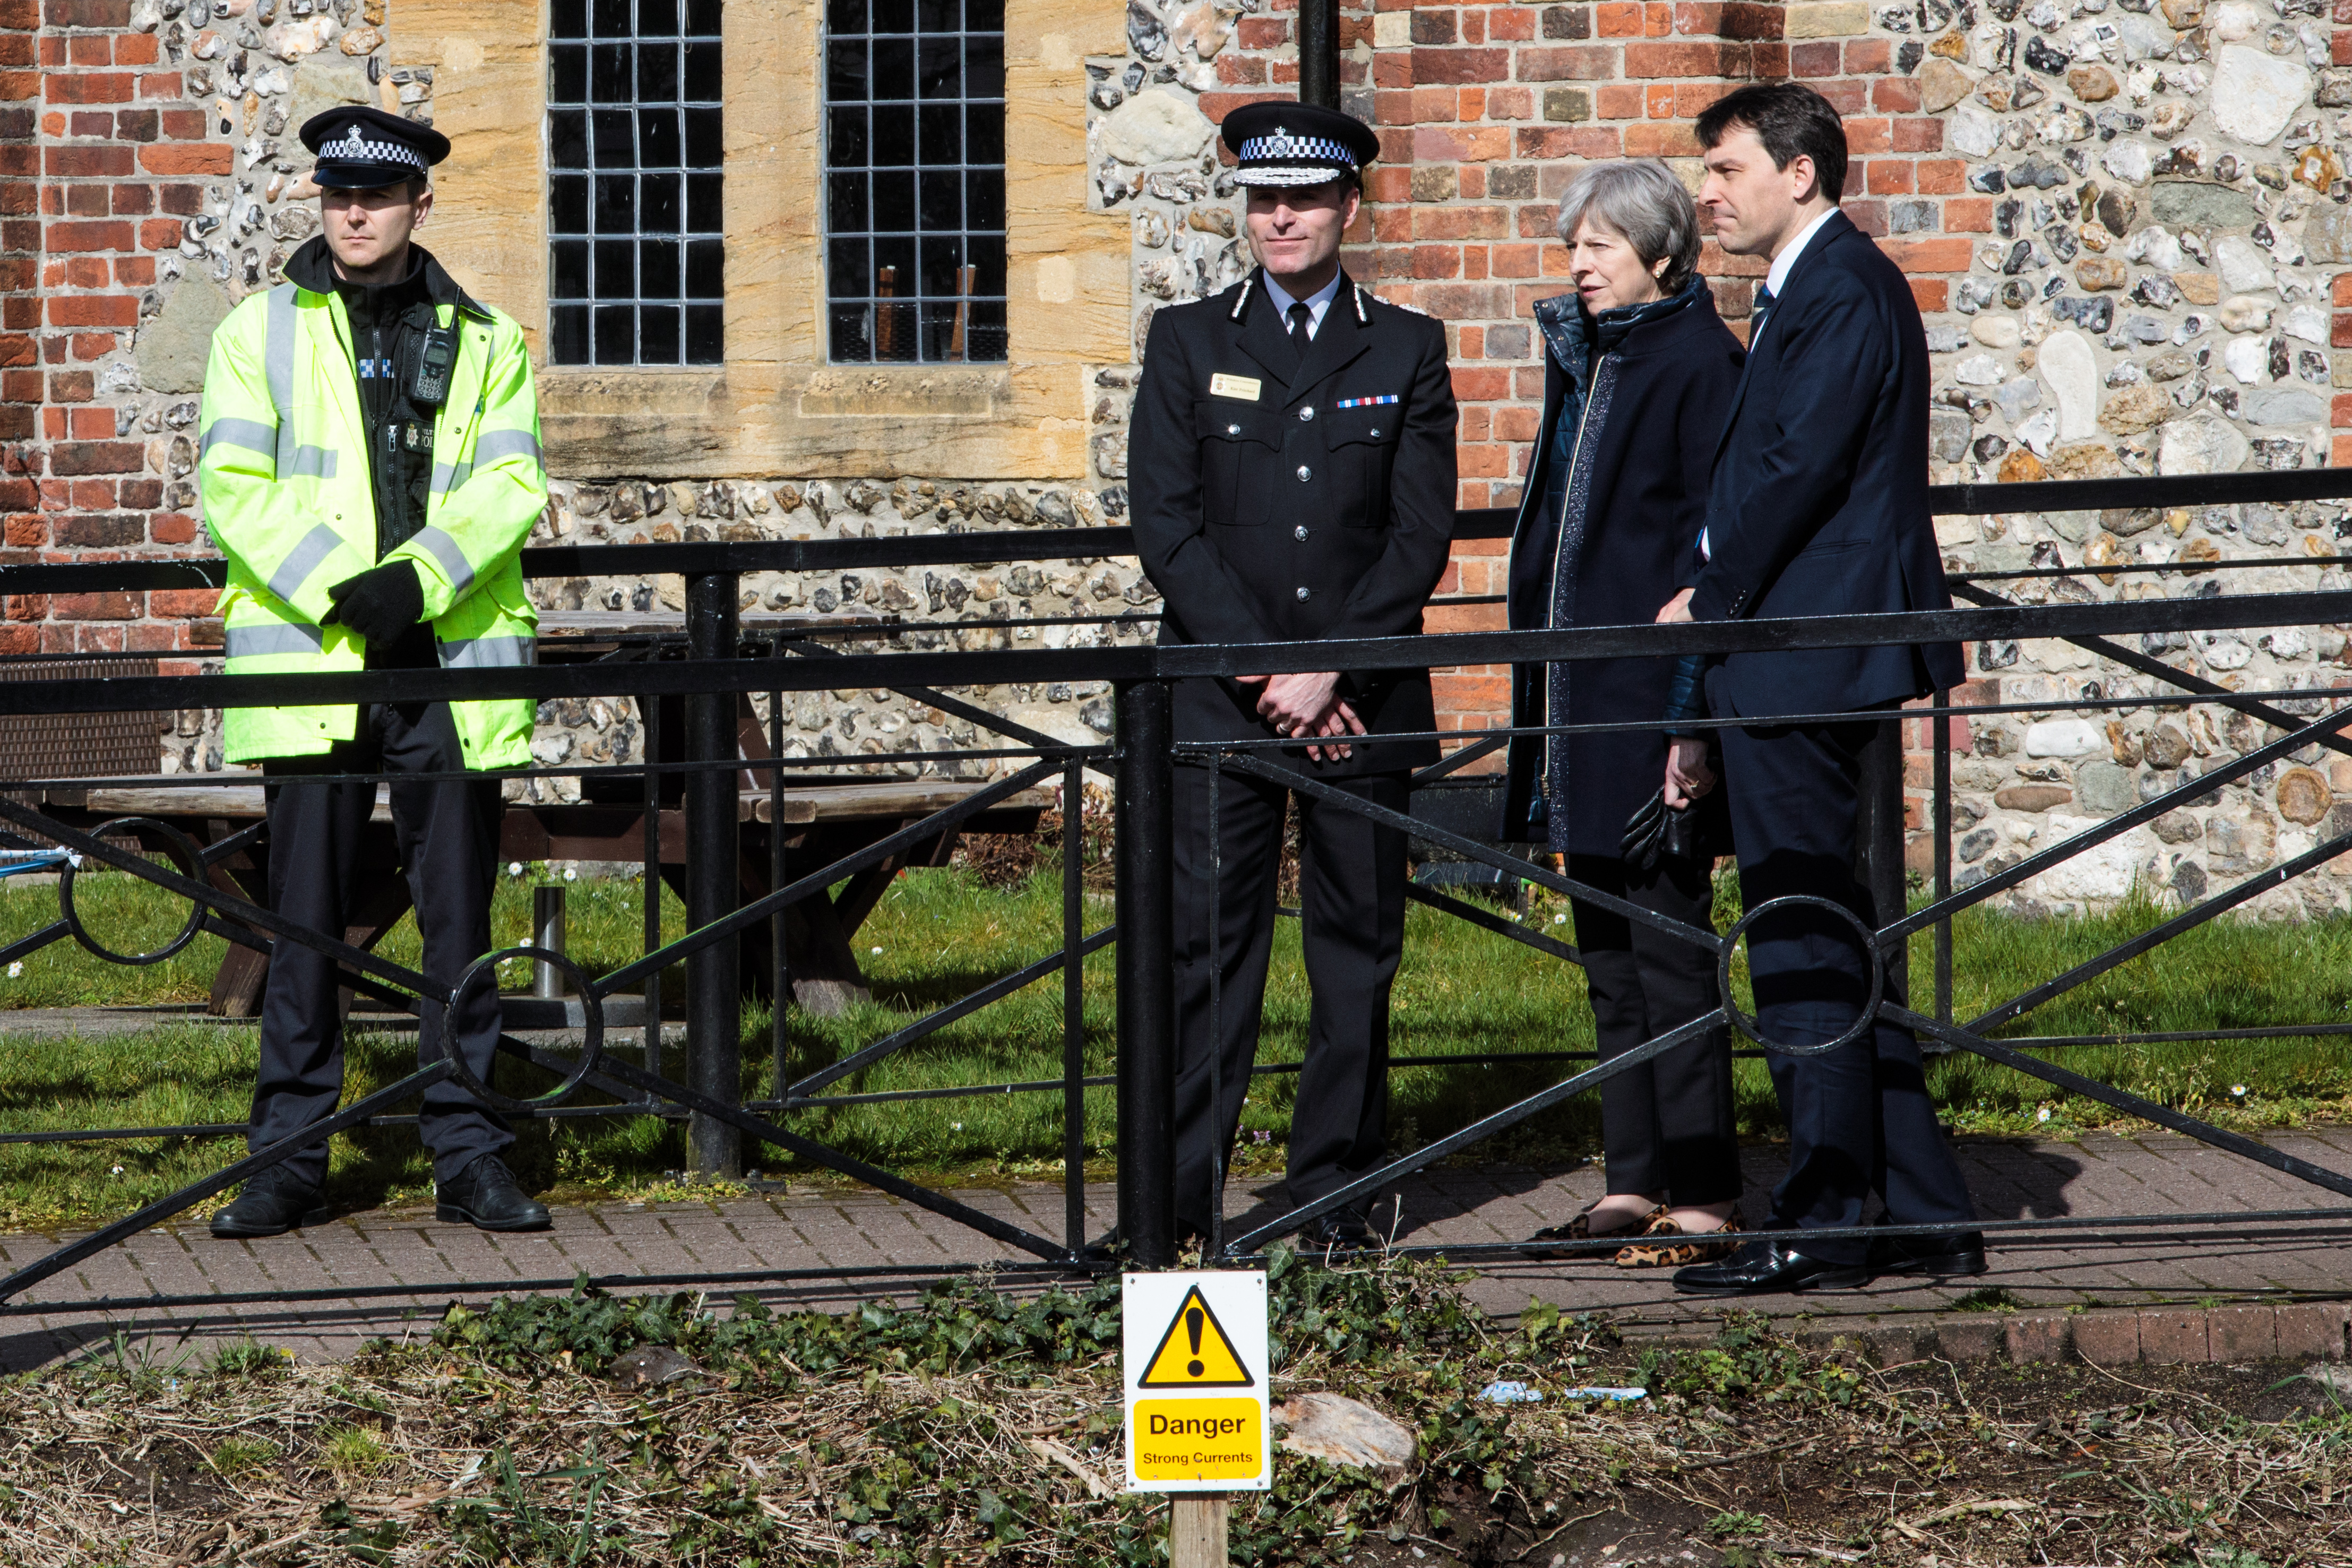 British Prime Minister Theresa May at the location in Salisbury visited by Sergei Skripal and his daughter Yulia before they were found on a nearby bench in March. British intelligence traced the nerve agent used to a Russian facility in the closed city of Shikhany.